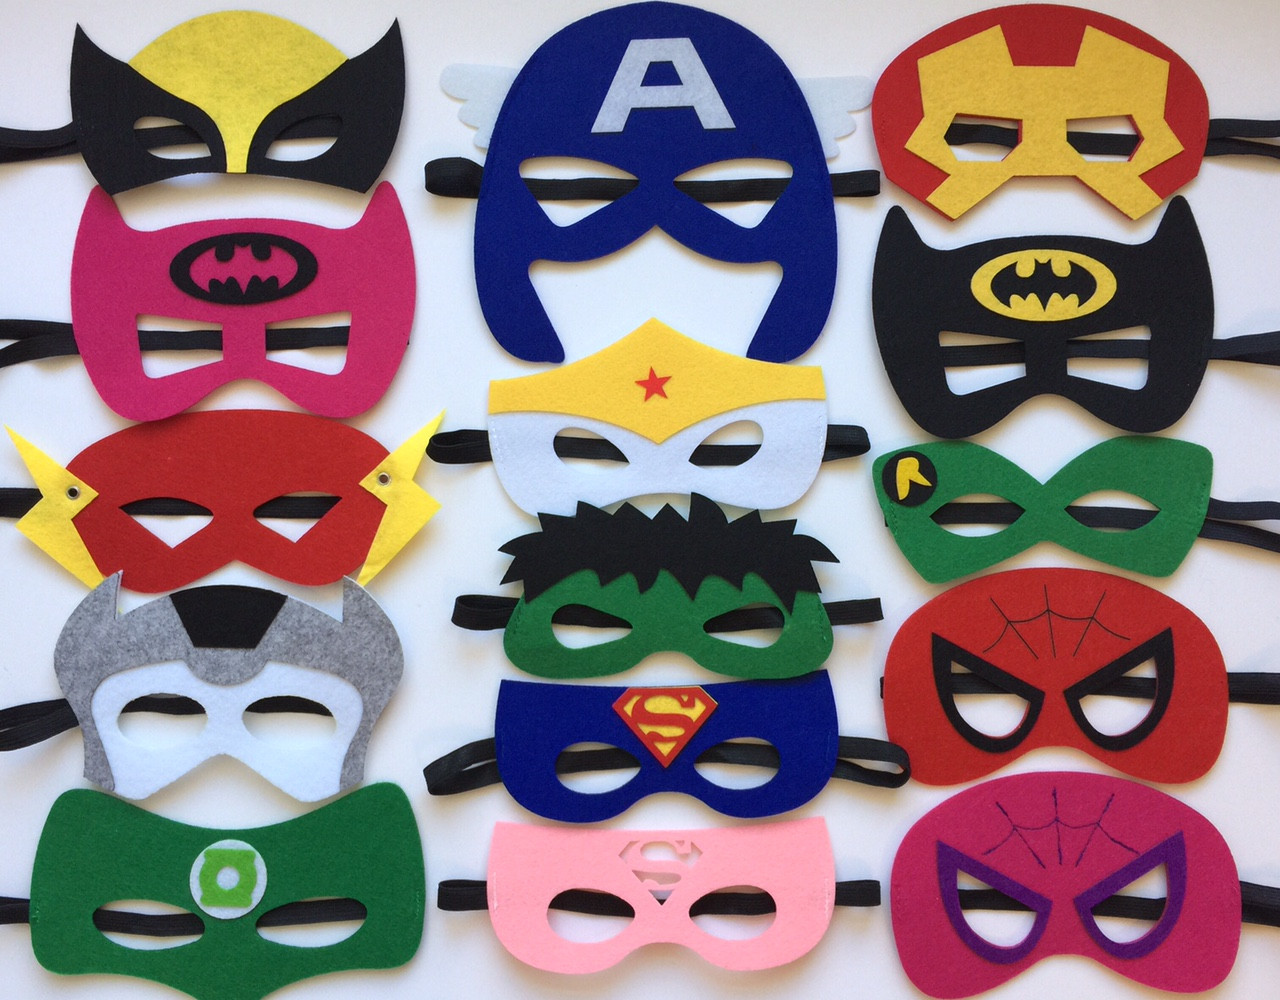 Primary image for Superhero Party Masks, Superhero Party Favors, Superhero Party Decorations